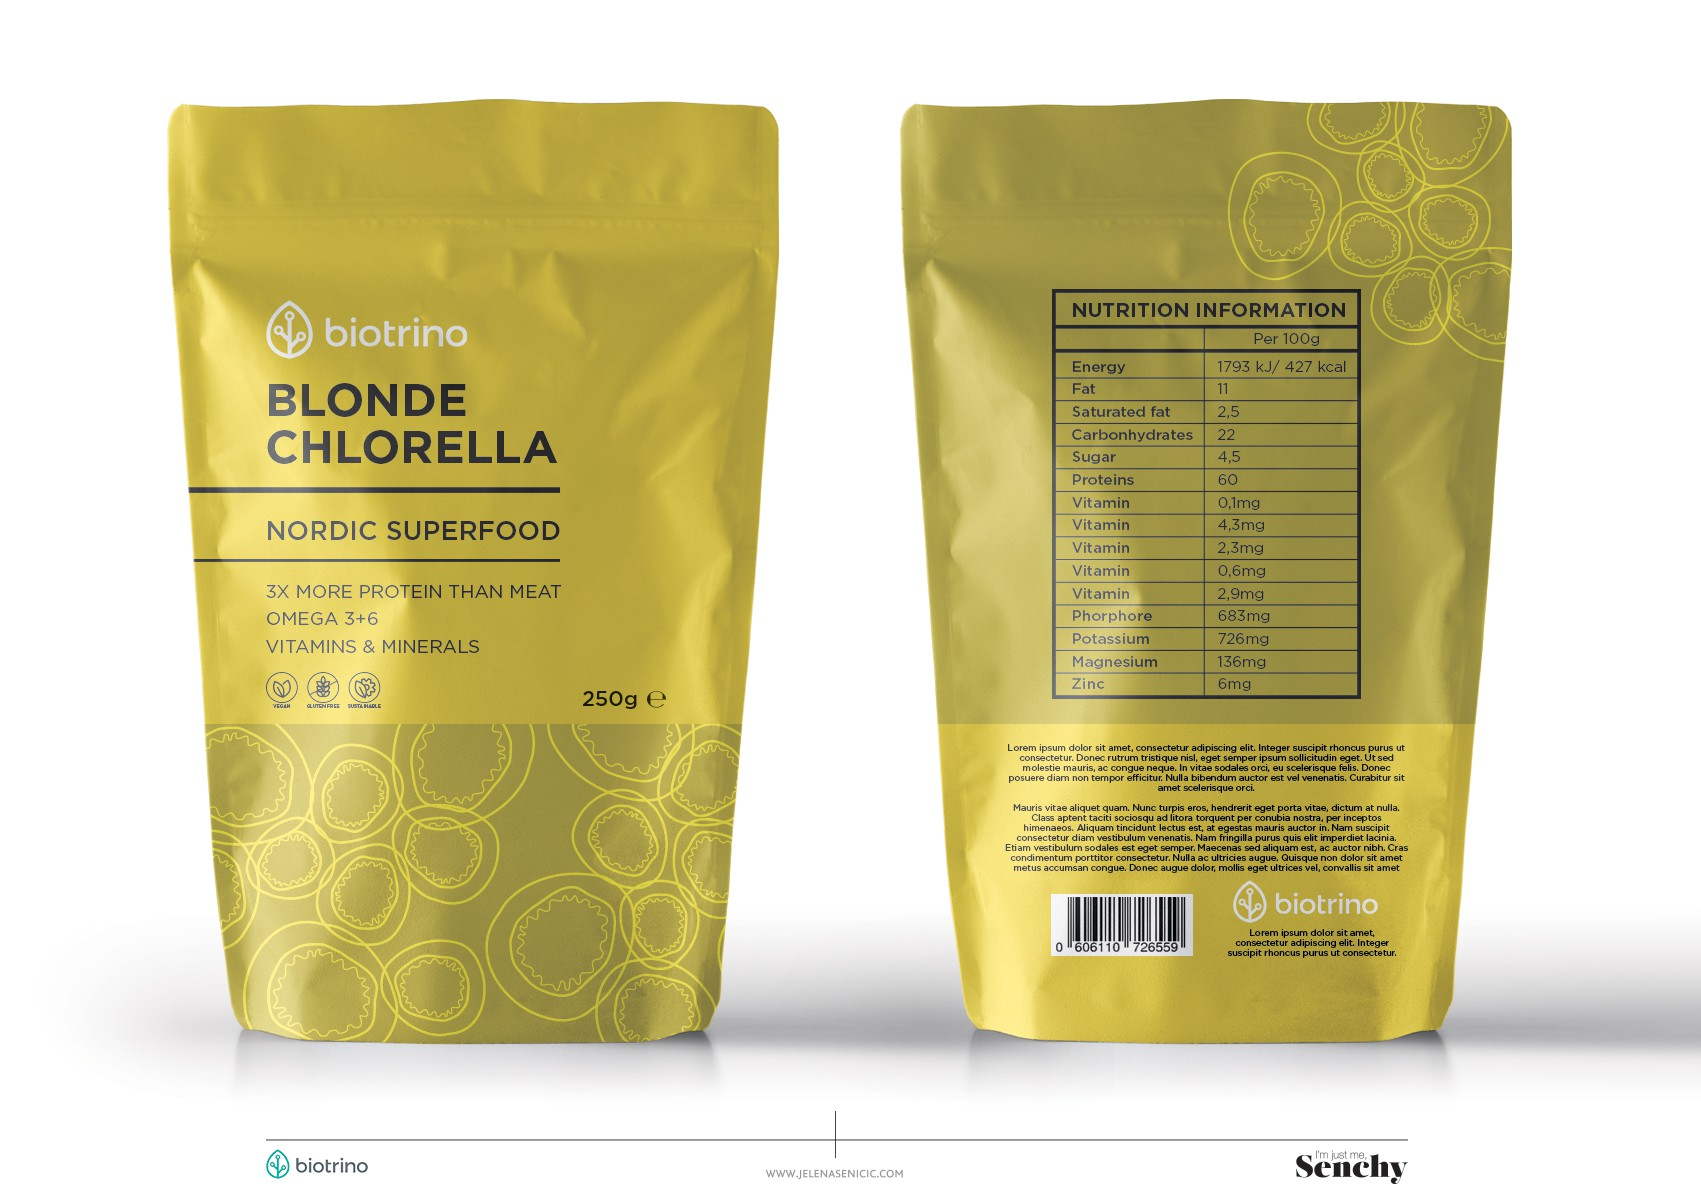 Golden chlorella - The nordic superfood